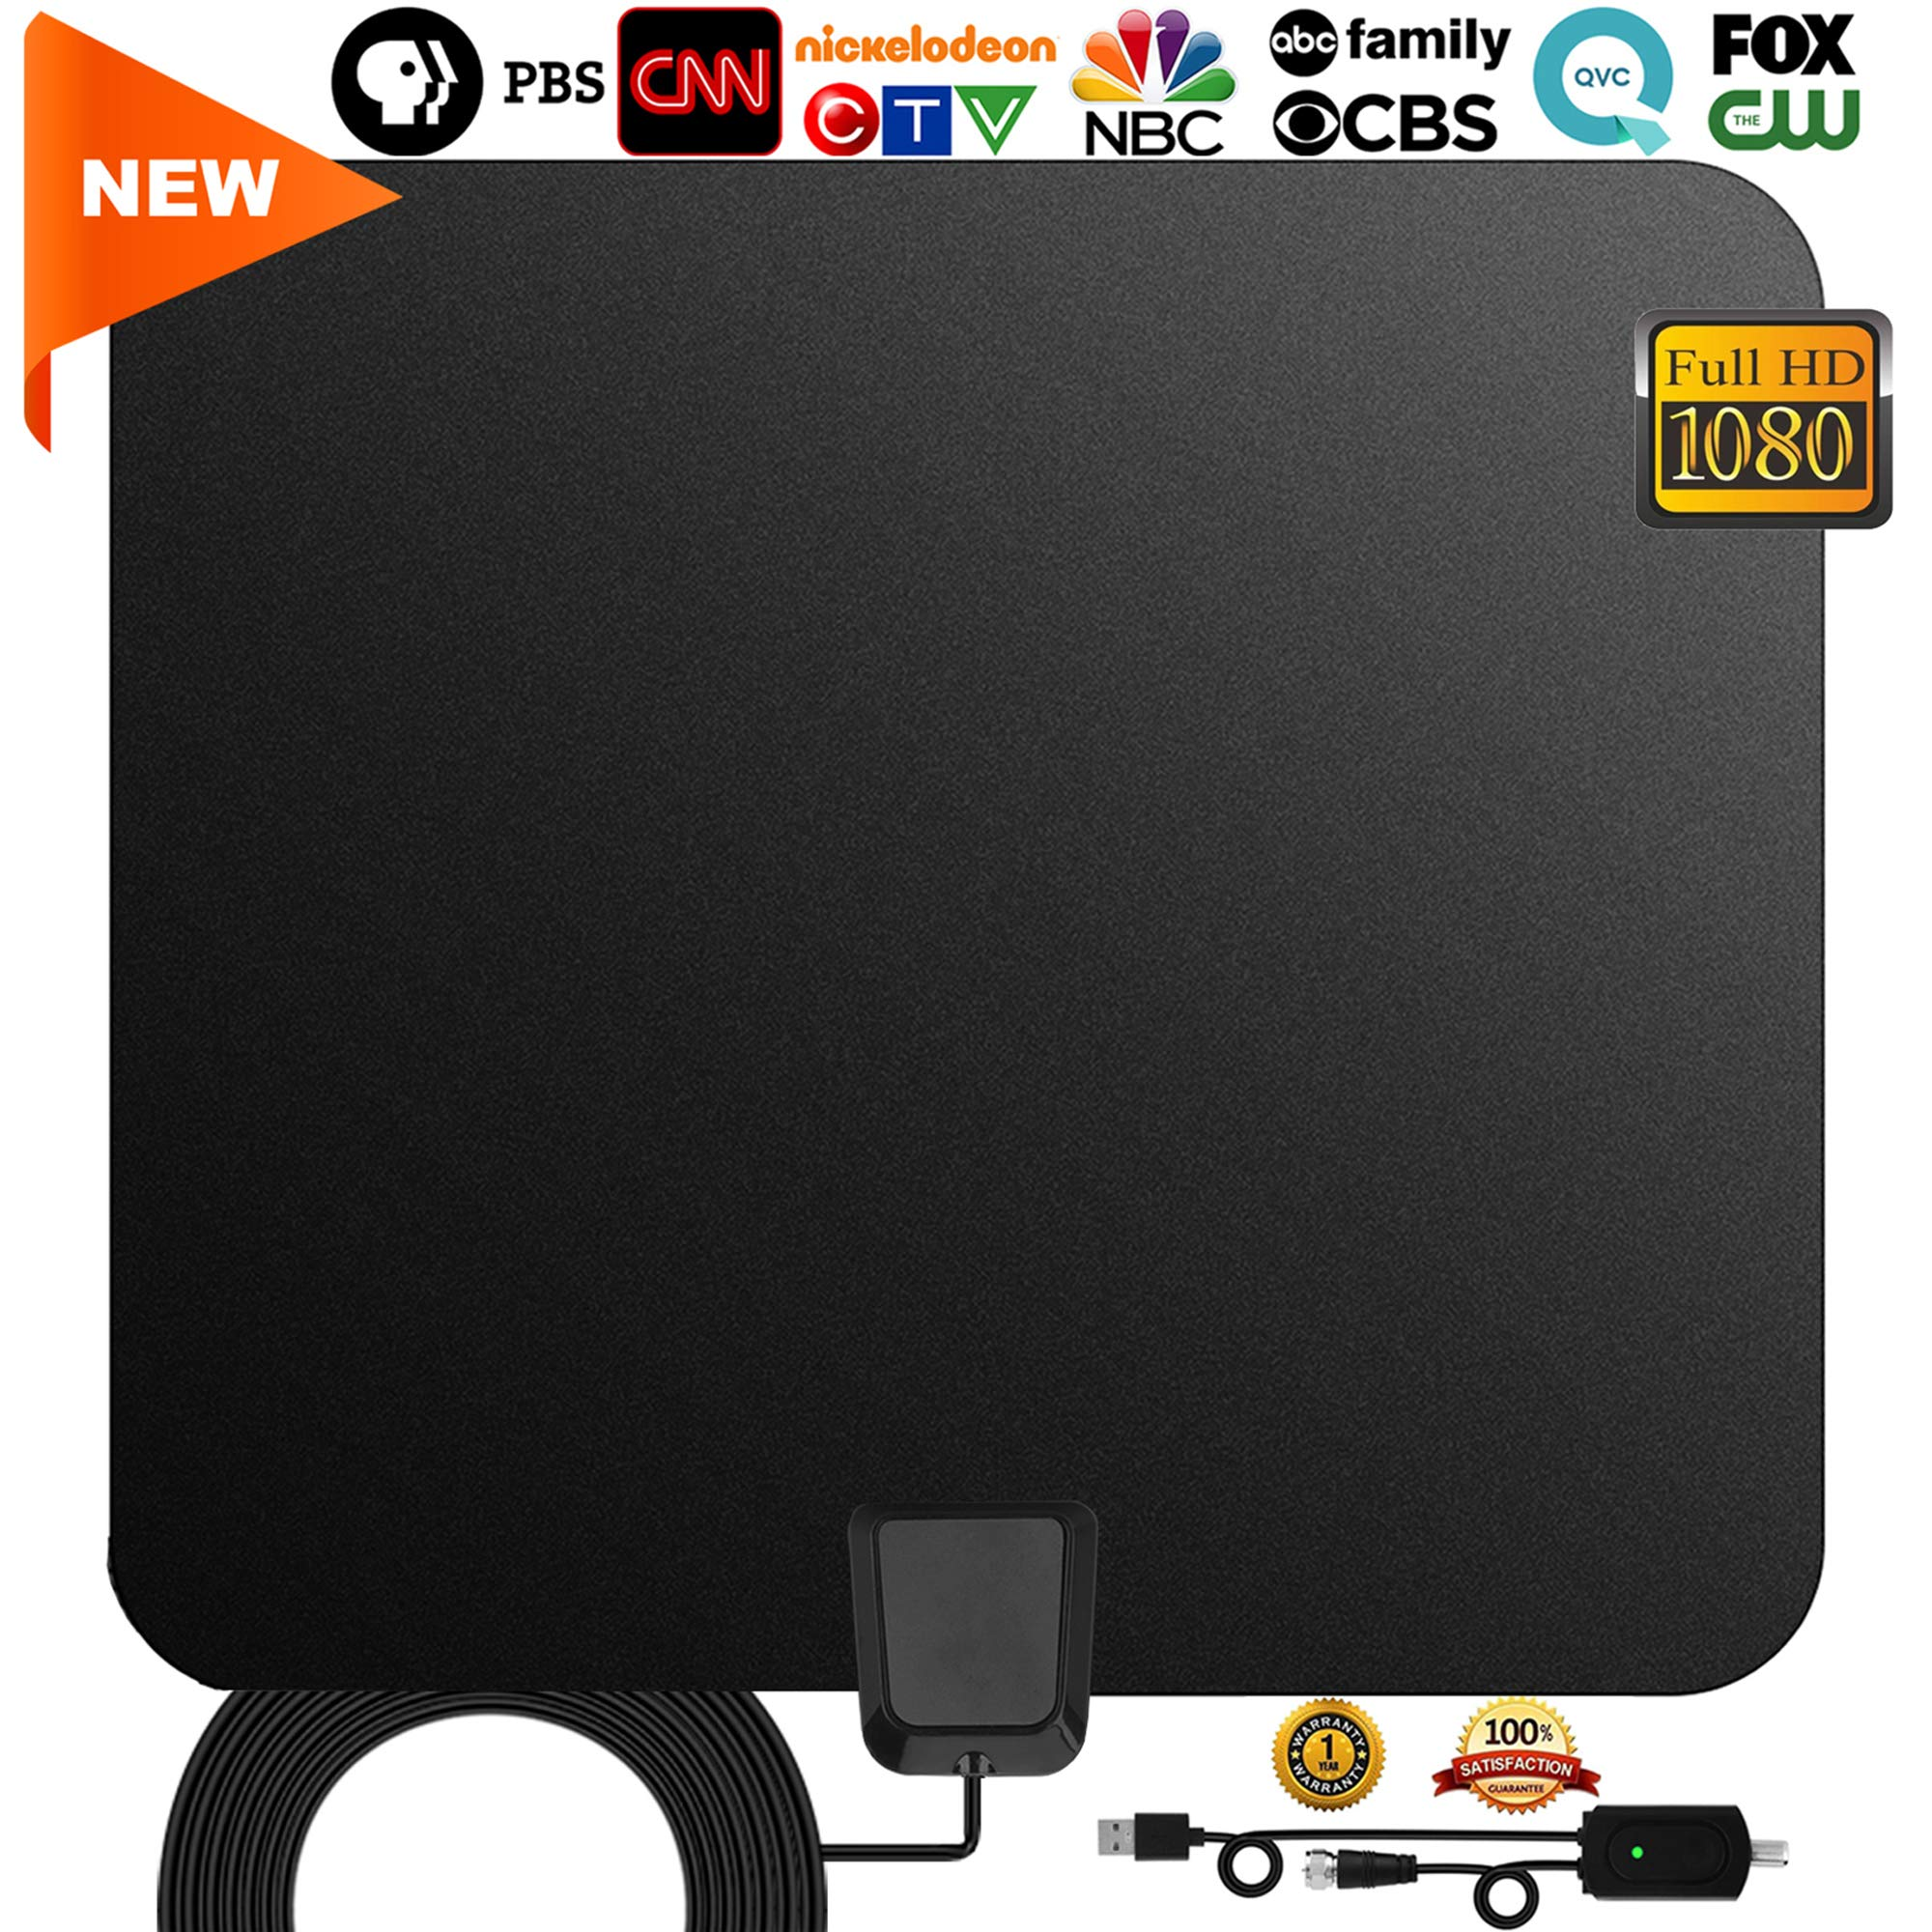 TV antenna,[2019 Newest] Indoor Digital HDTV Amplified Television Antennae Freeview 4K 1080P HD VHF UHF for Local Channels 60~120 Miles Range With Signal amplifier Support ALL TV's-13.3ft Coax Cable by GreenYellow